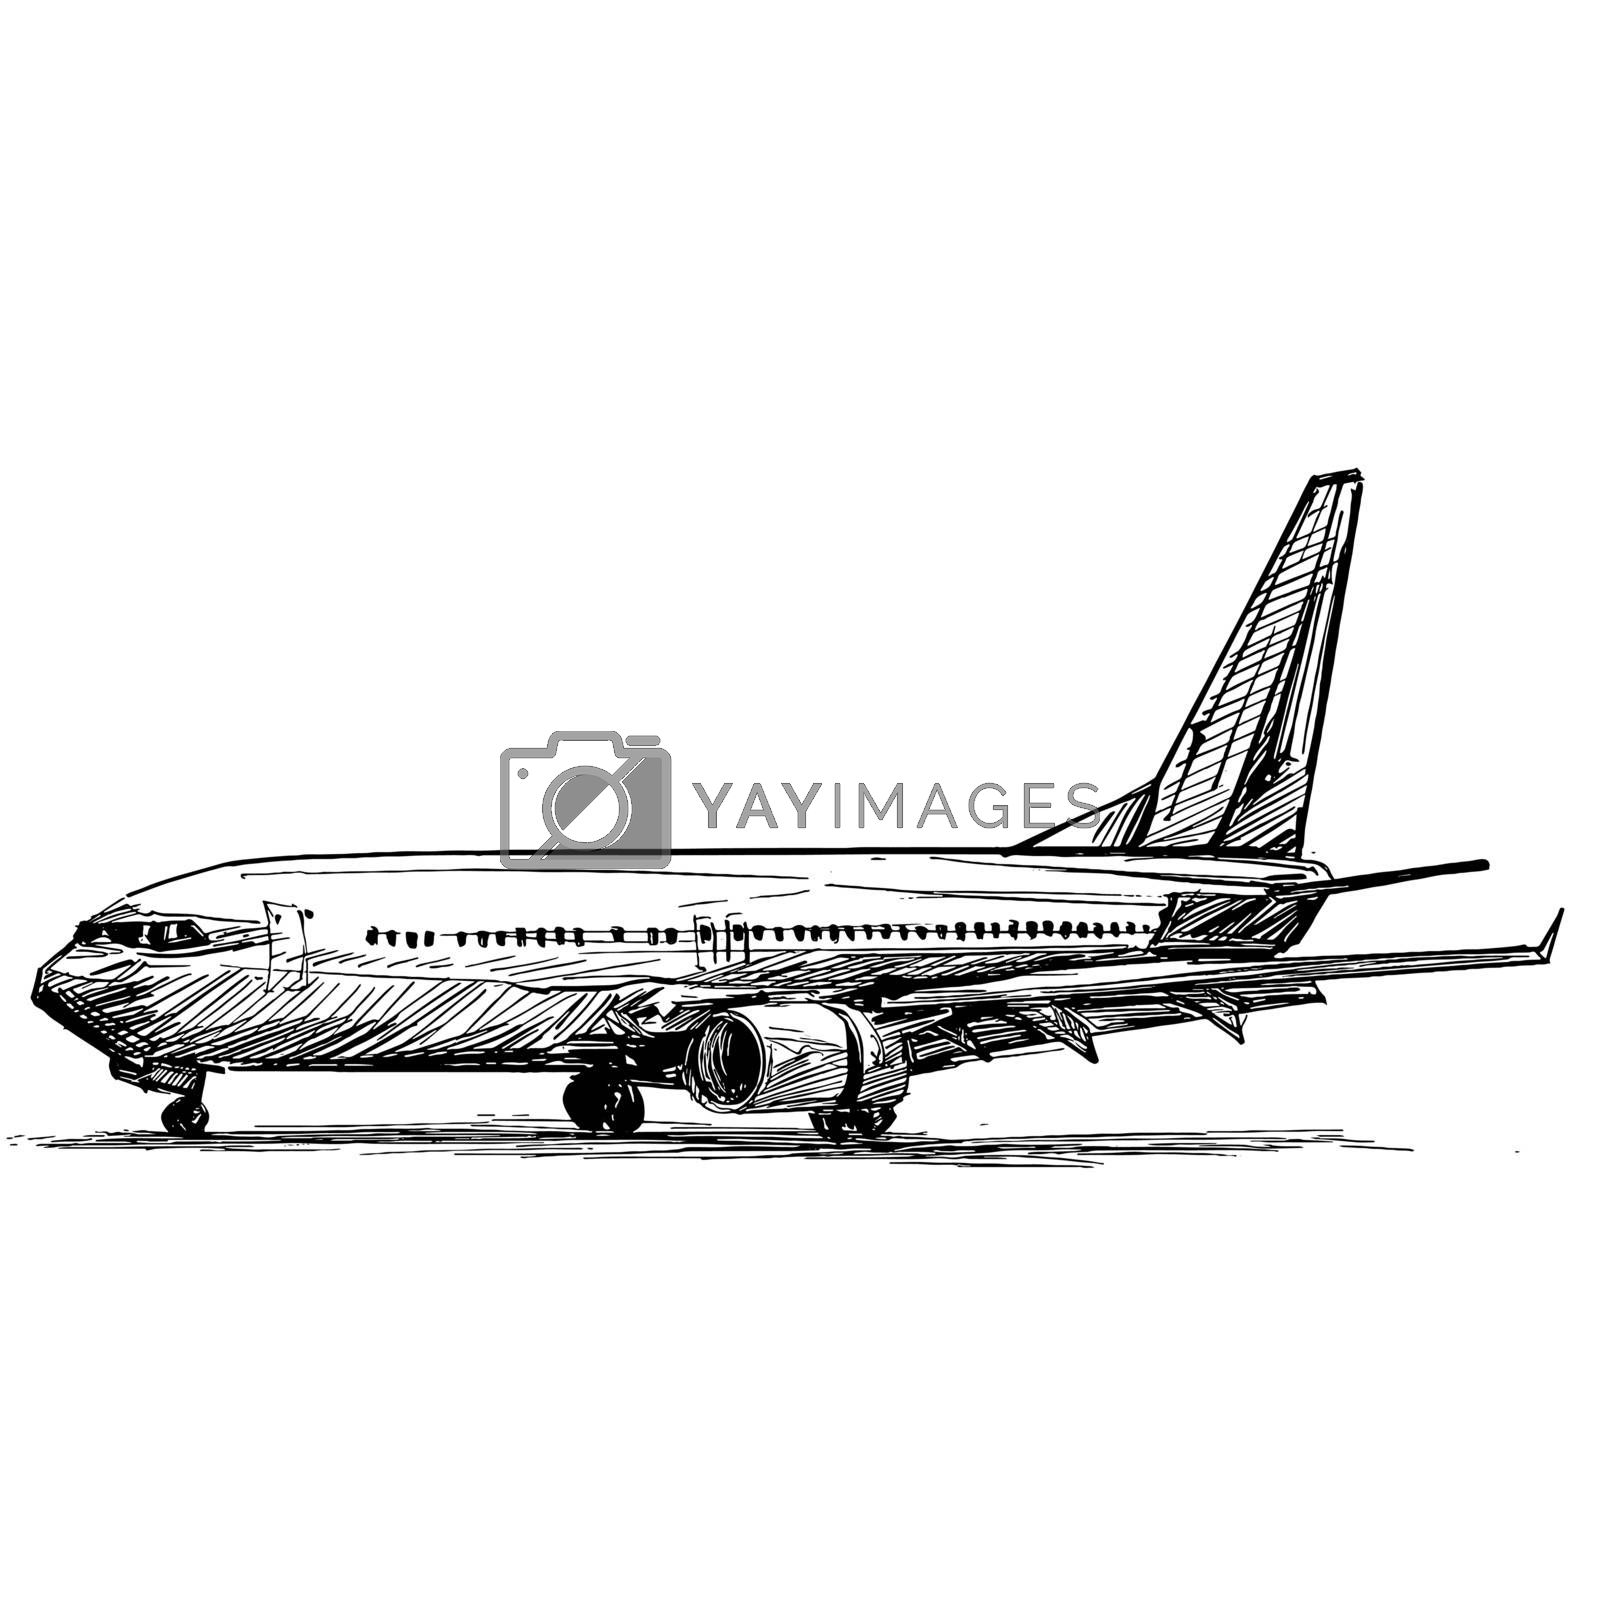 Drawing of the airplane landing at the airport